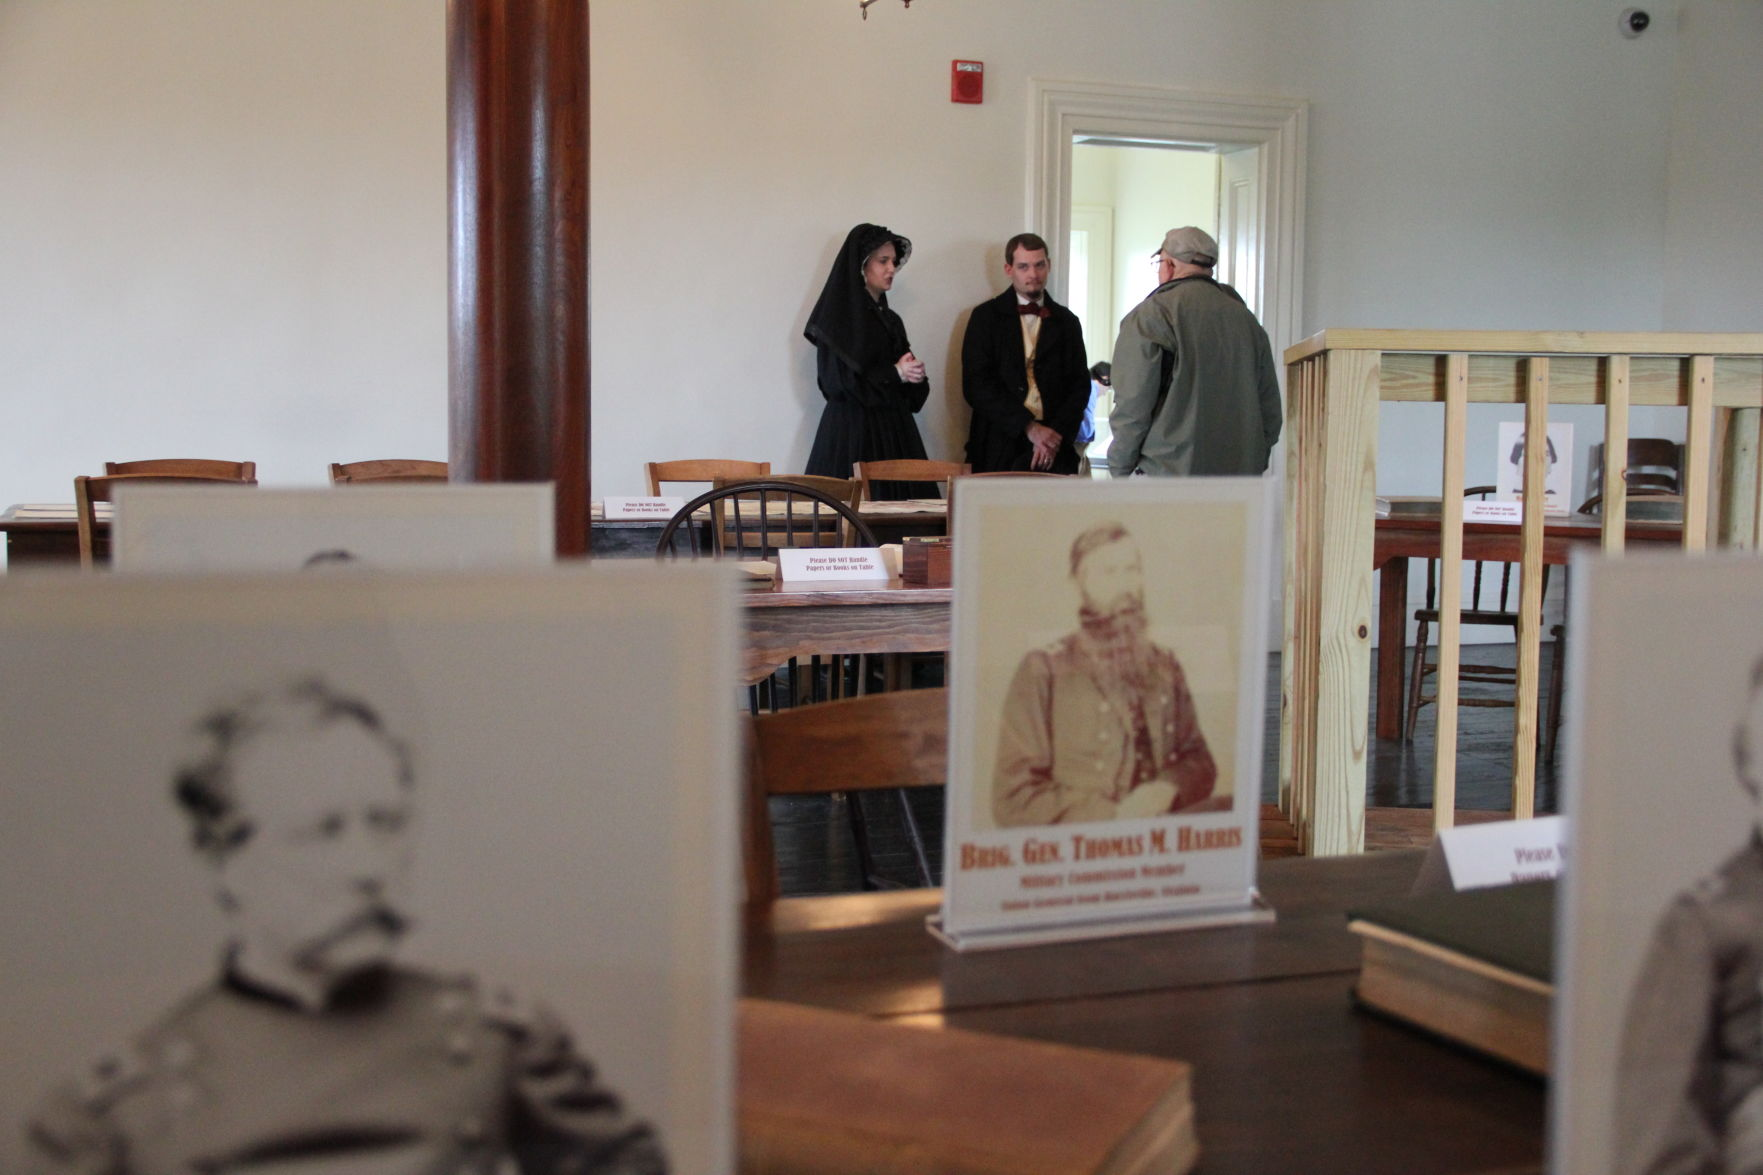 Mary Surratt & Dr. Samuel Mudd re-enactors